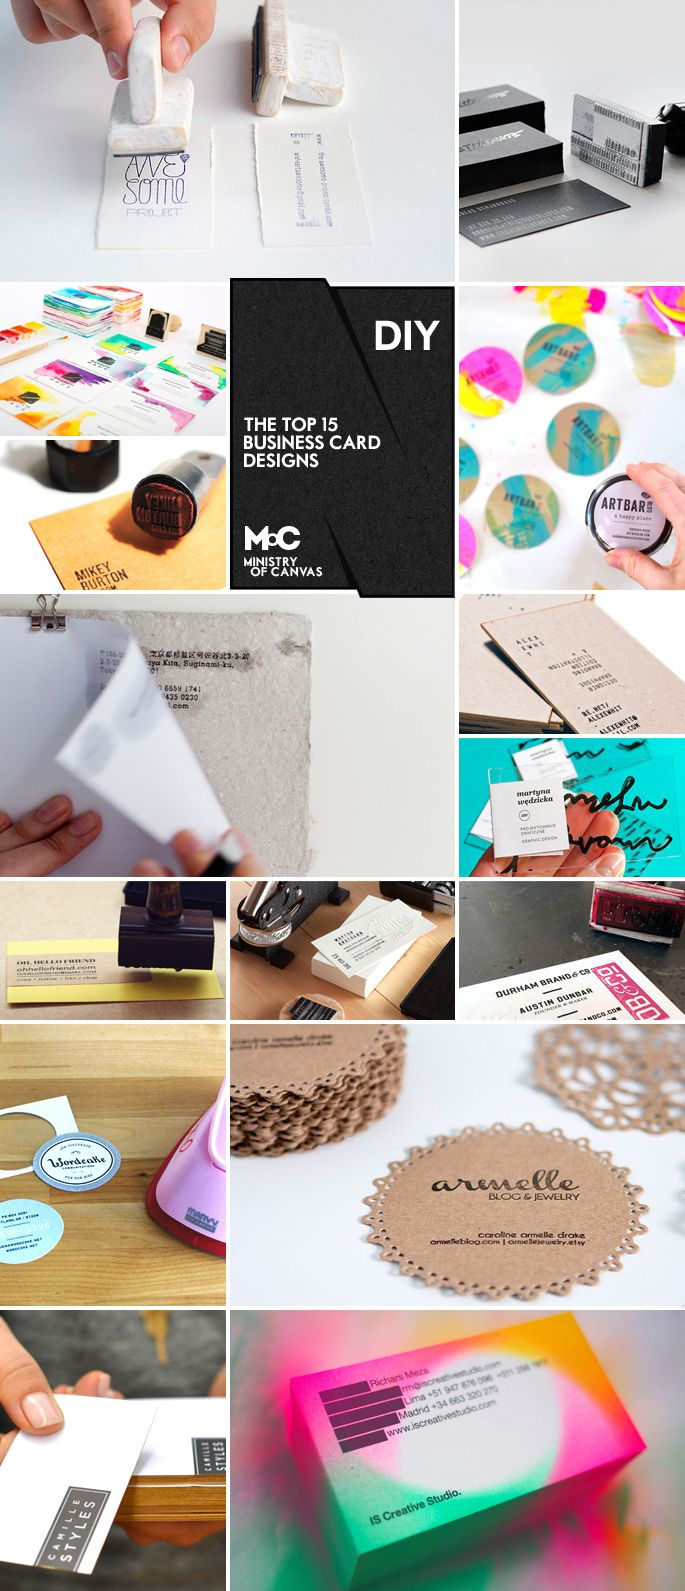 6 super easy ways to create handmade diy business cards pinterest the top 16 diy business cards 6 super easy ways to create handmade diy business cards reheart Images